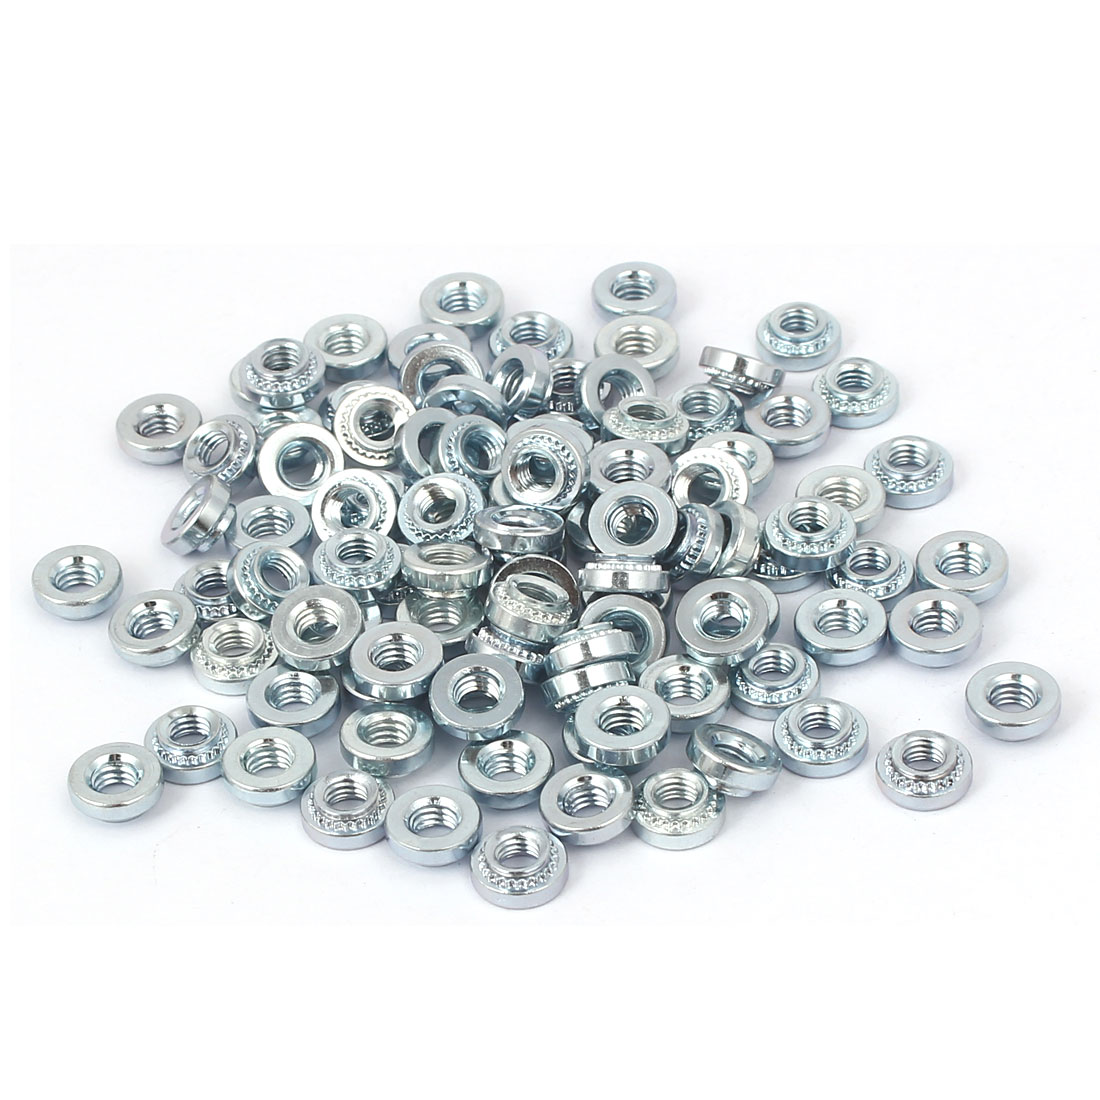 S-M4-2 Carbon Steel Self Clinching Rivet Nut Fastener 100pcs for 1.4mm Thin Plates